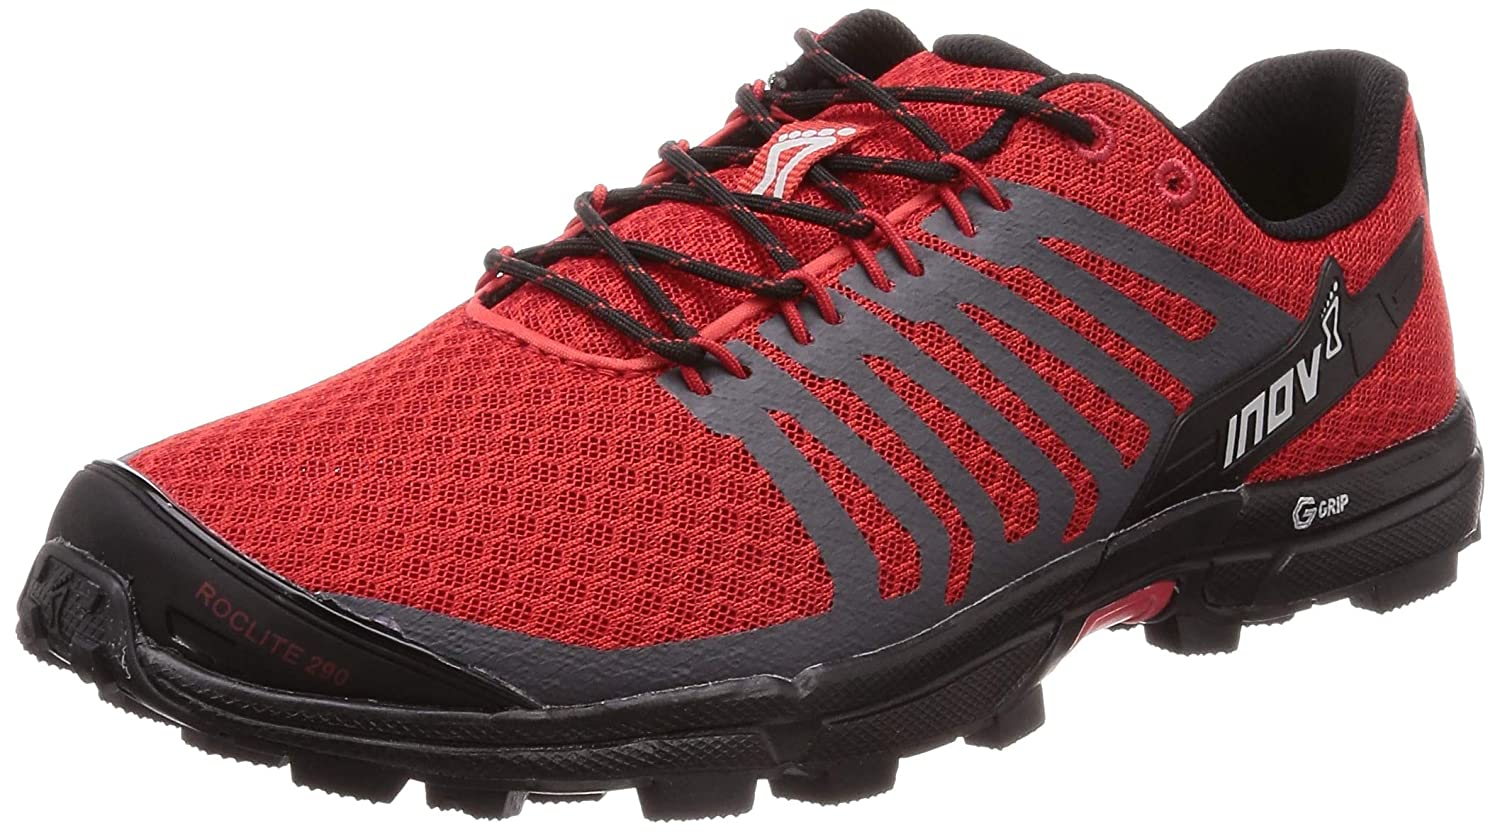 Red Black Inov-8 Mens Roclite 290 V2   Trail Running OCR shoes   Lightweight   Superior Durability & Unrivalled Graphene Grip